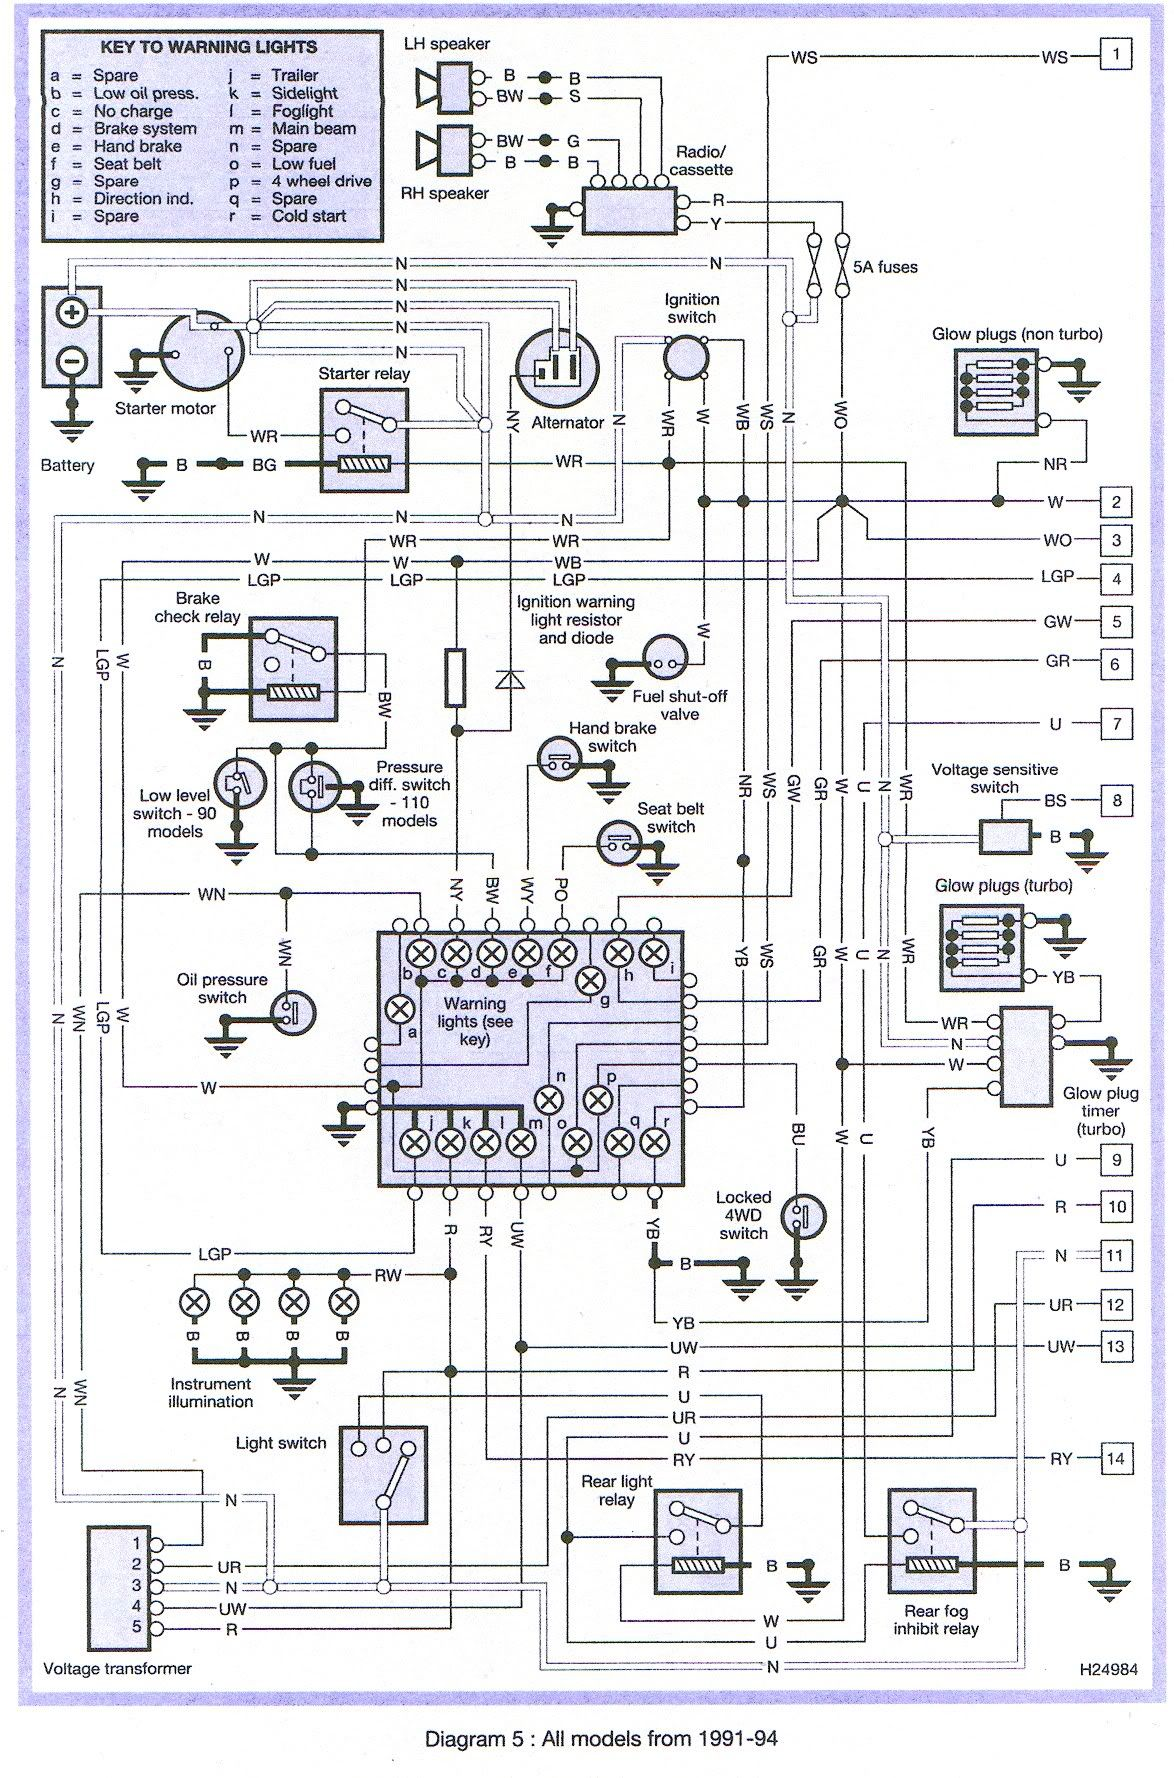 land rover discovery wiring diagram manual repair with engine rh pinterest com Land Rover Discovery 2 Engine Land Rover Defender 90